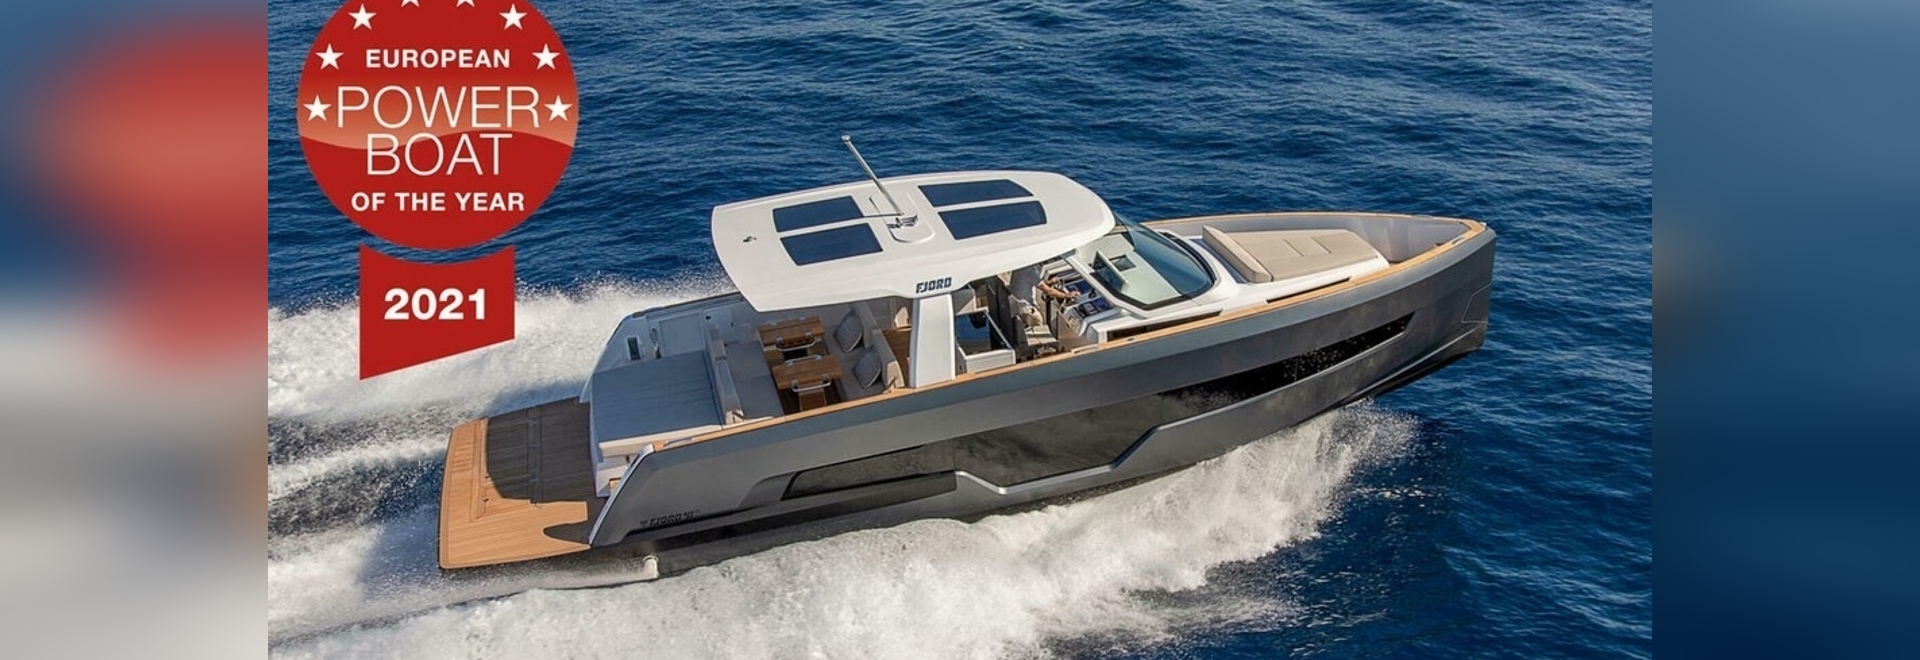 """FJORD 41 XL AWARDED """"EUROPEAN POWERBOAT OF THE YEAR 2021"""